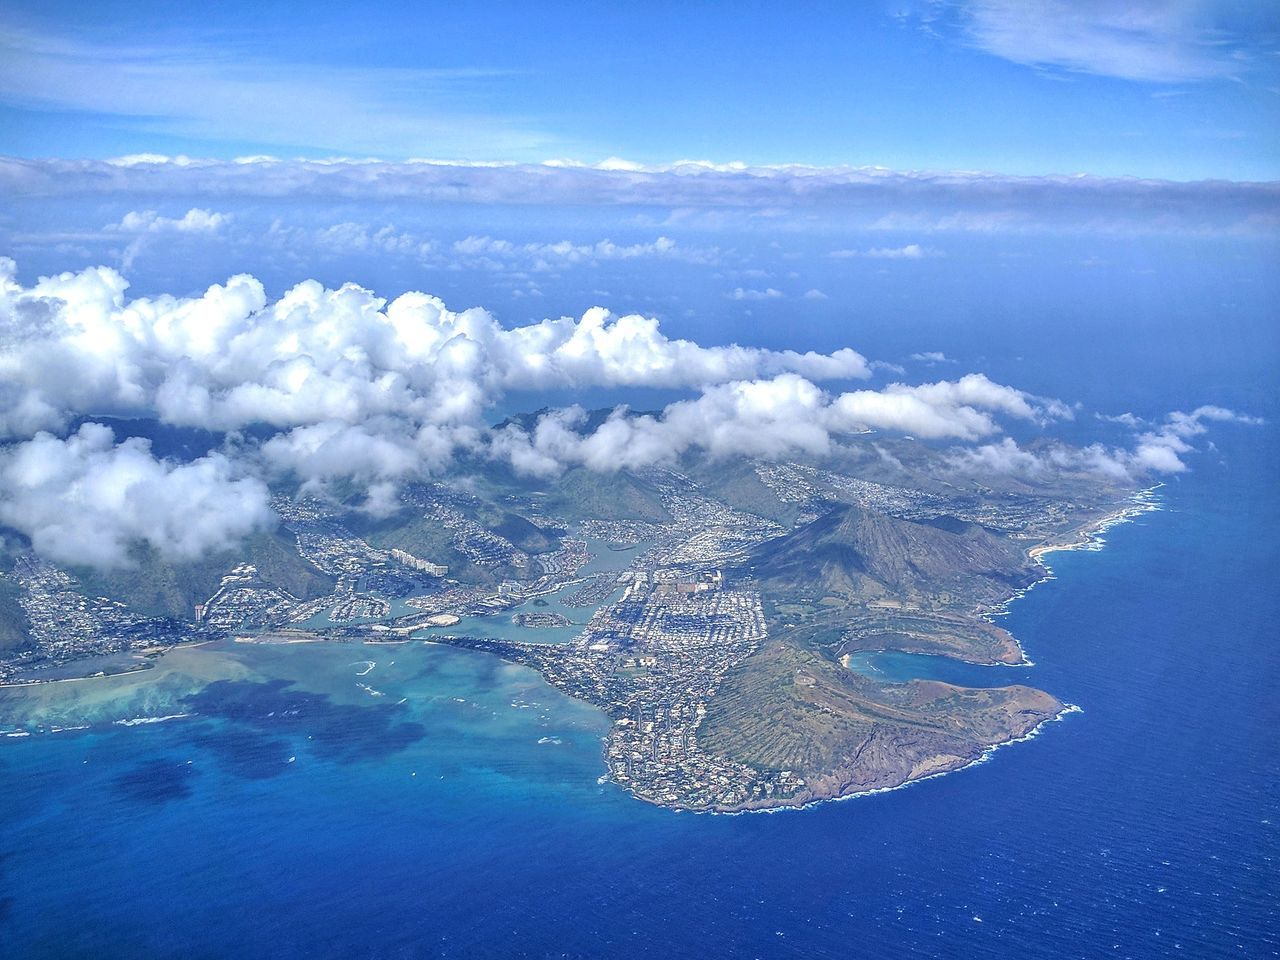 bidding fond aloha to east o'ahu Aerial View Cloud - Sky Beauty In Nature Taking Photos EyeEm Gallery Mobile Photography Eyem Gallery In An Airplane Pacific Ocean Going Home Mountains And Valleys Honolulu, Hawaii Places I Love Mountains And Sky Cloudporn Beauty In Nature Waterfront Living Edited My Way Blue Sea Pacific Ocean View Looking Down Flying Over Water Tropical Beauty Blue Scenic View